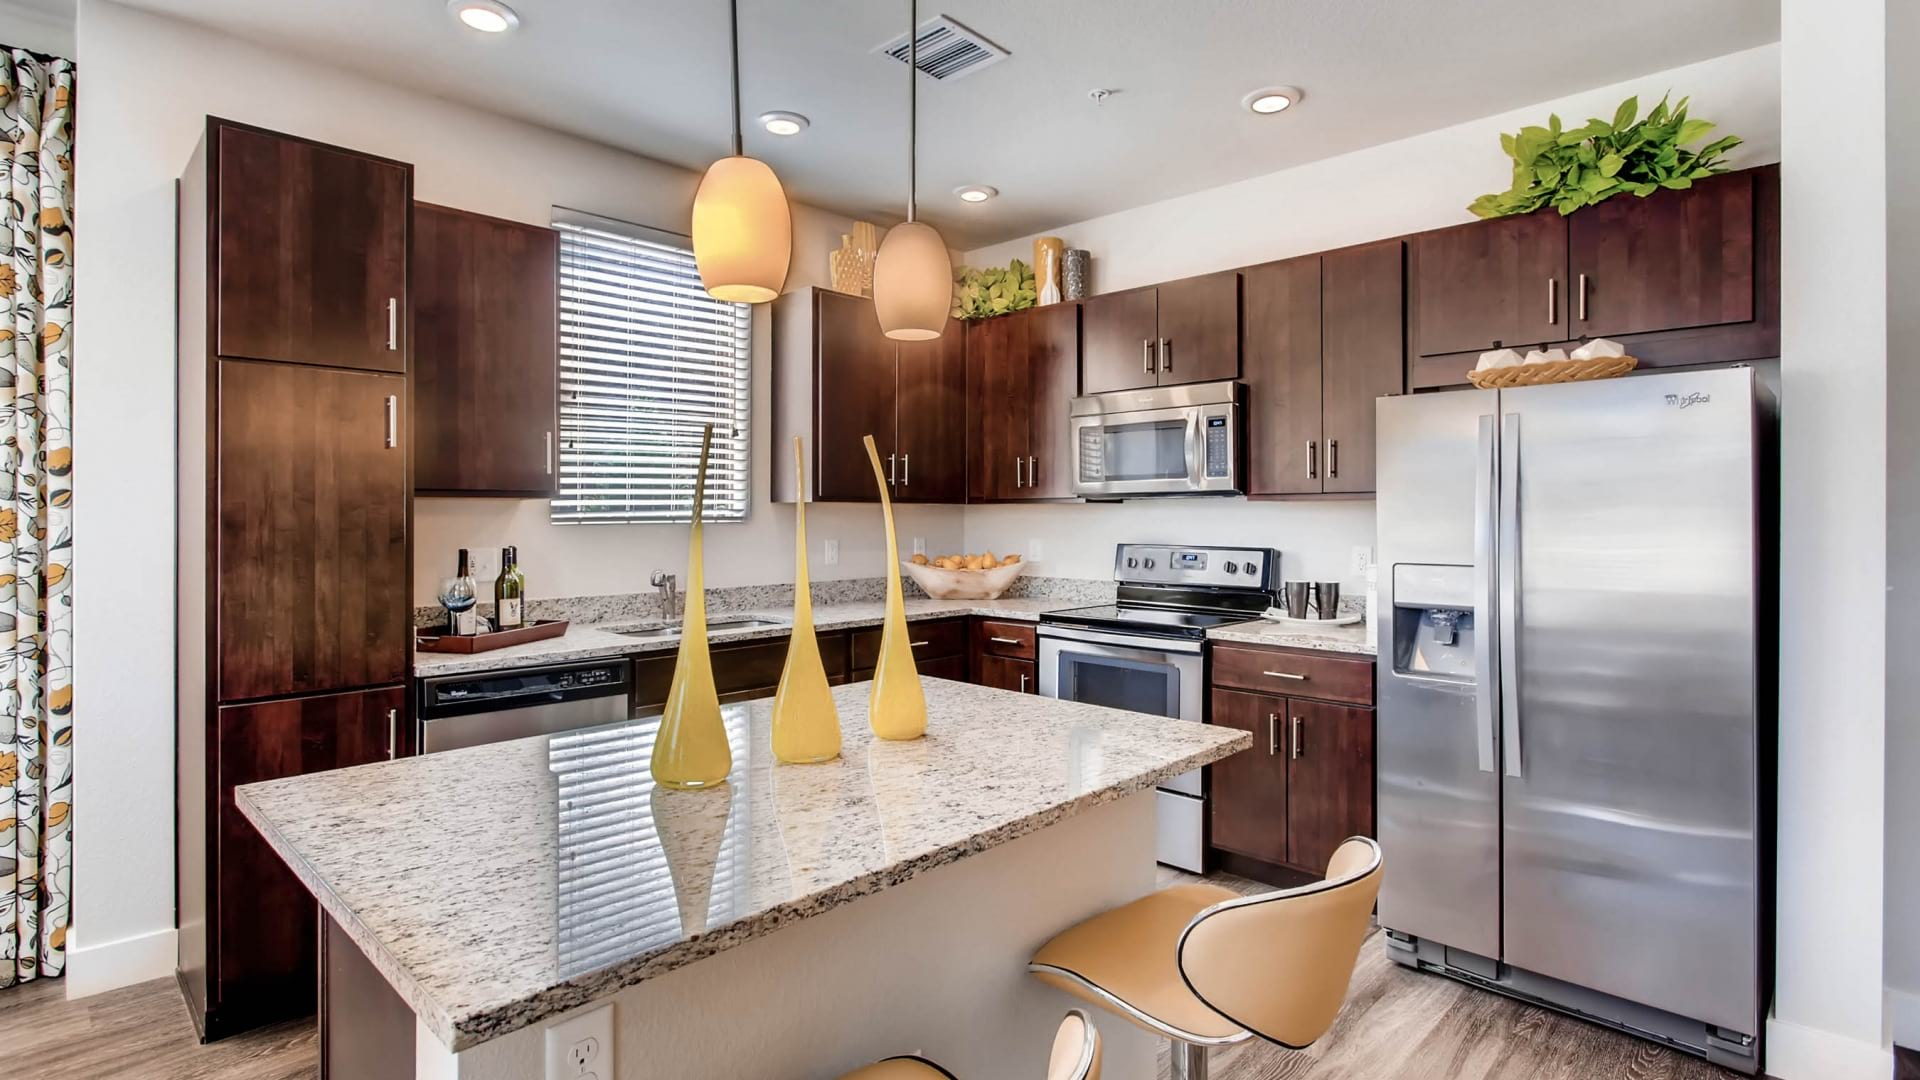 Modern Kitchen with Granite Countertops at our Apartments For Rent in Johnstown, CO